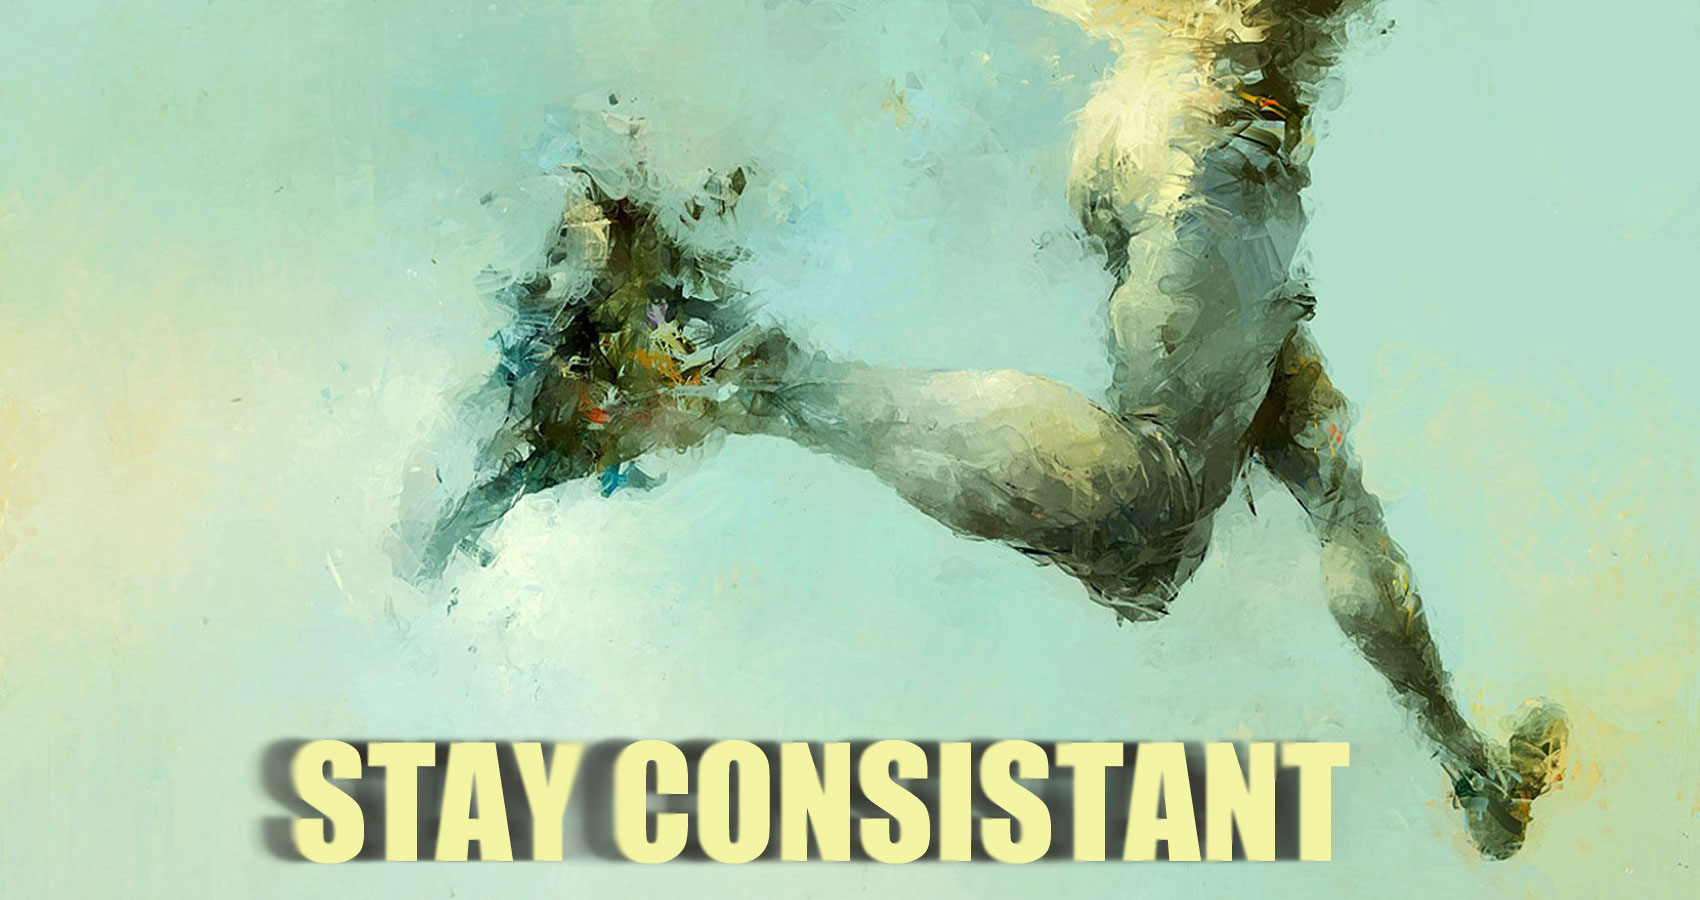 Stay consistent at Spillwords.com